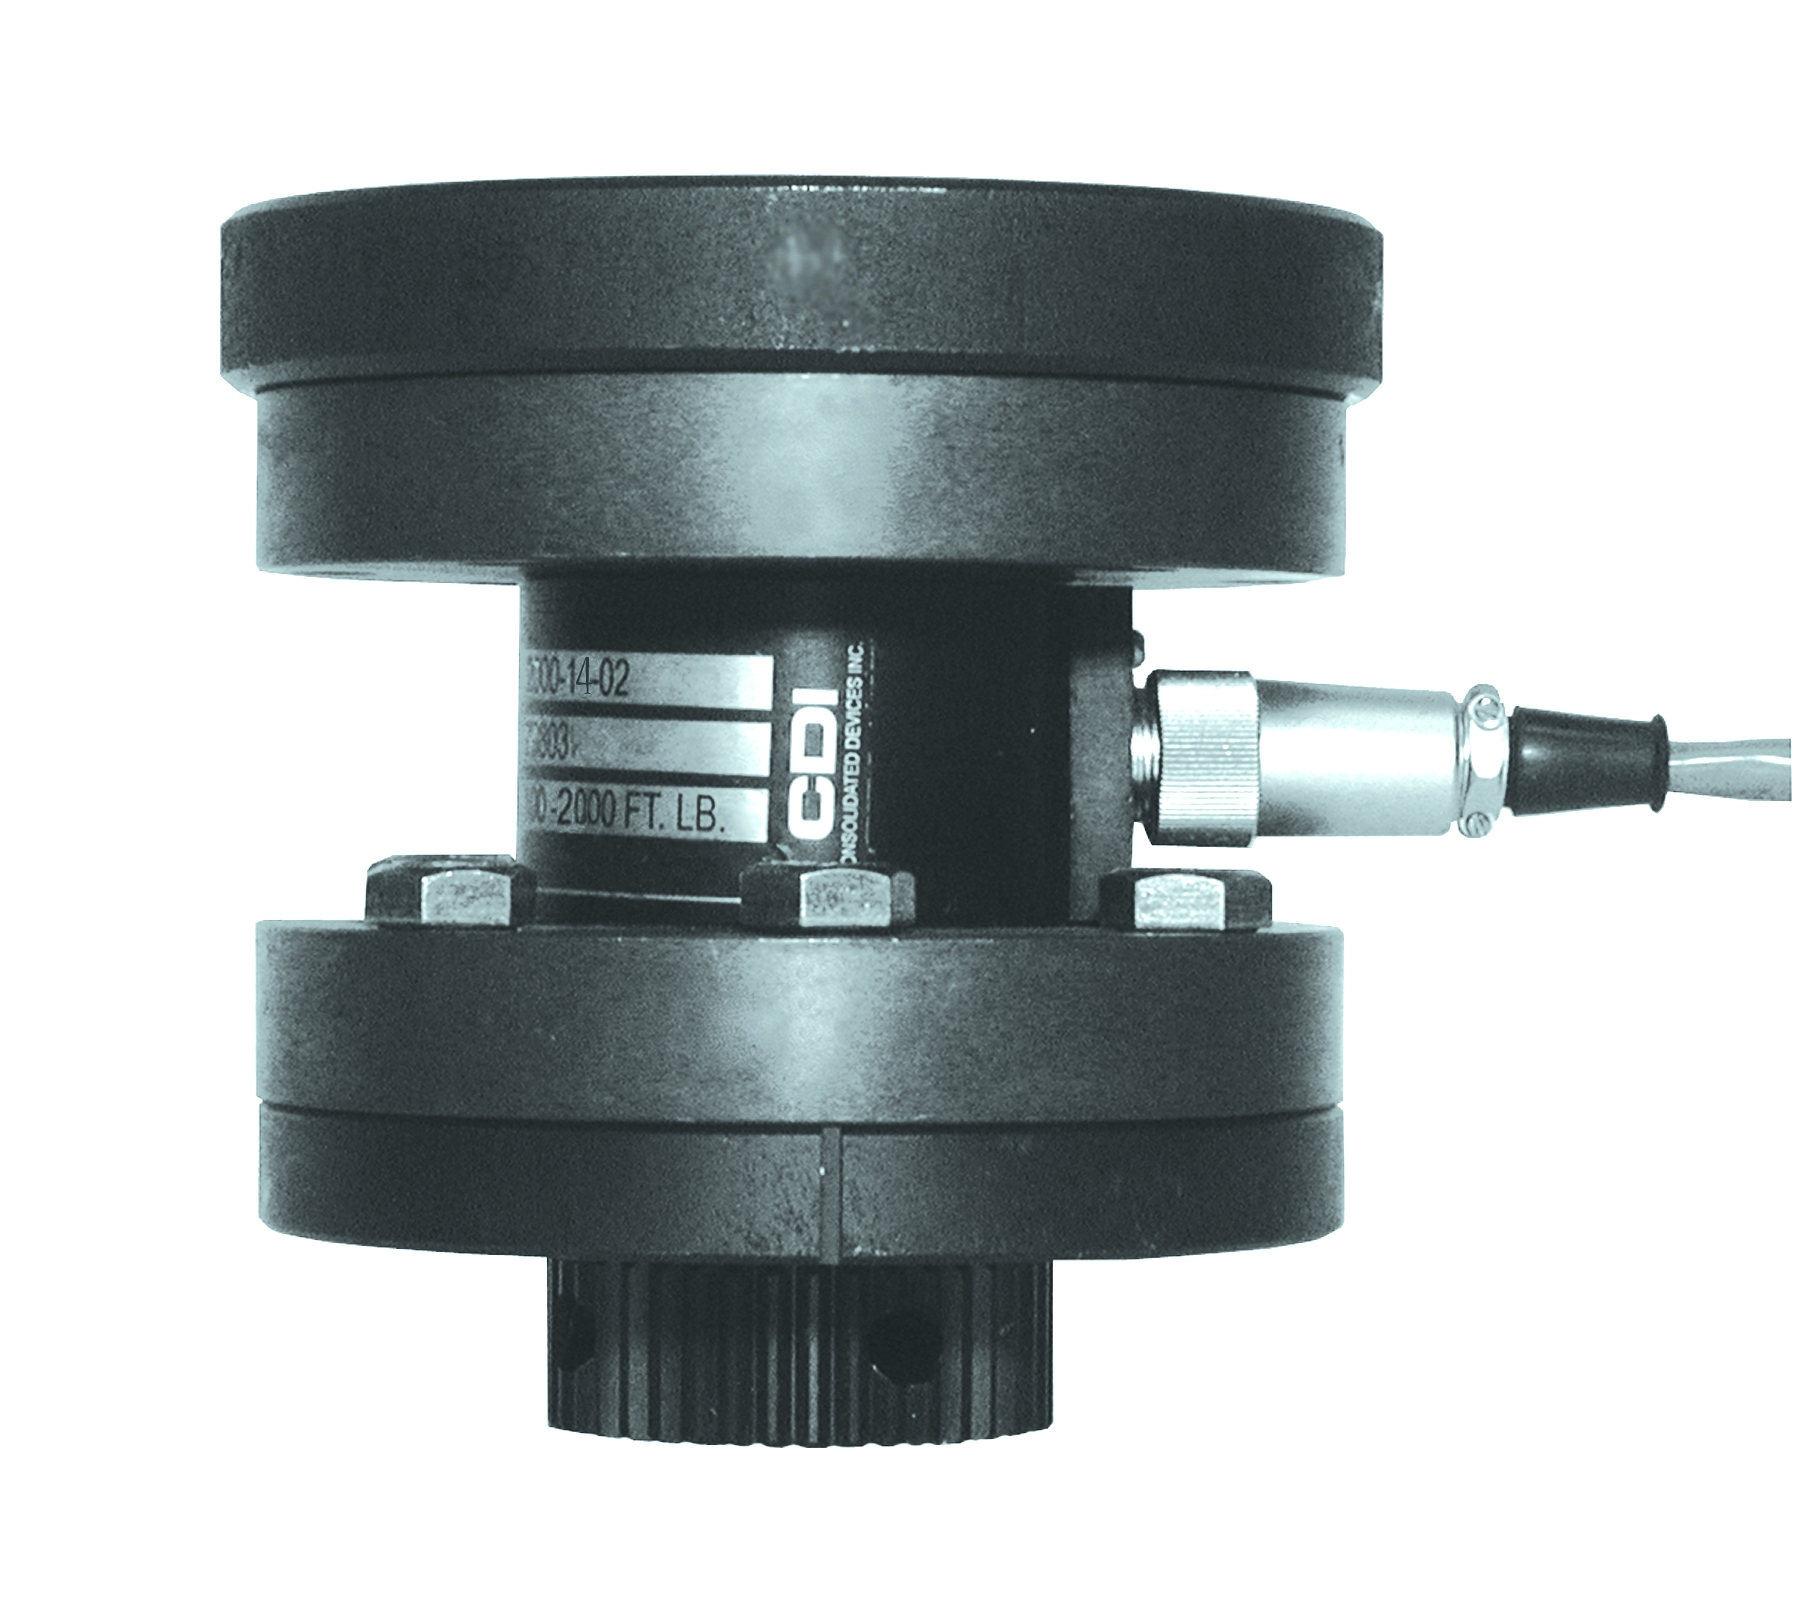 Transducer Range From 200 - 2000 ft. lbs -CDI Torque 2000-14-02